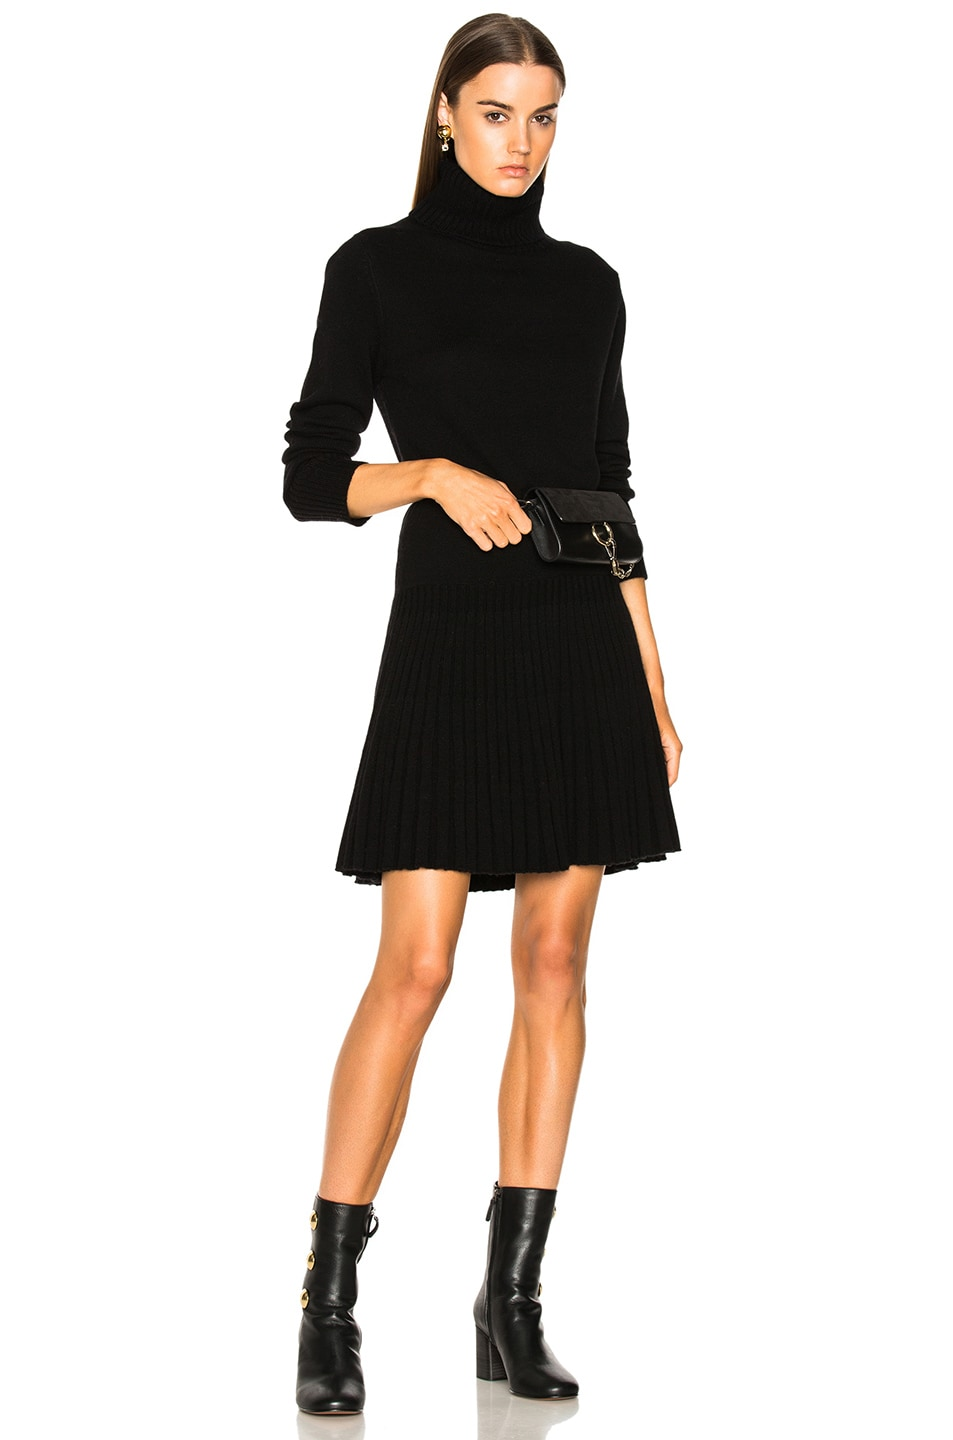 7fdb727f65a Image 1 of Chloe Iconic Cashmere Turtleneck Sweater Dress in Black